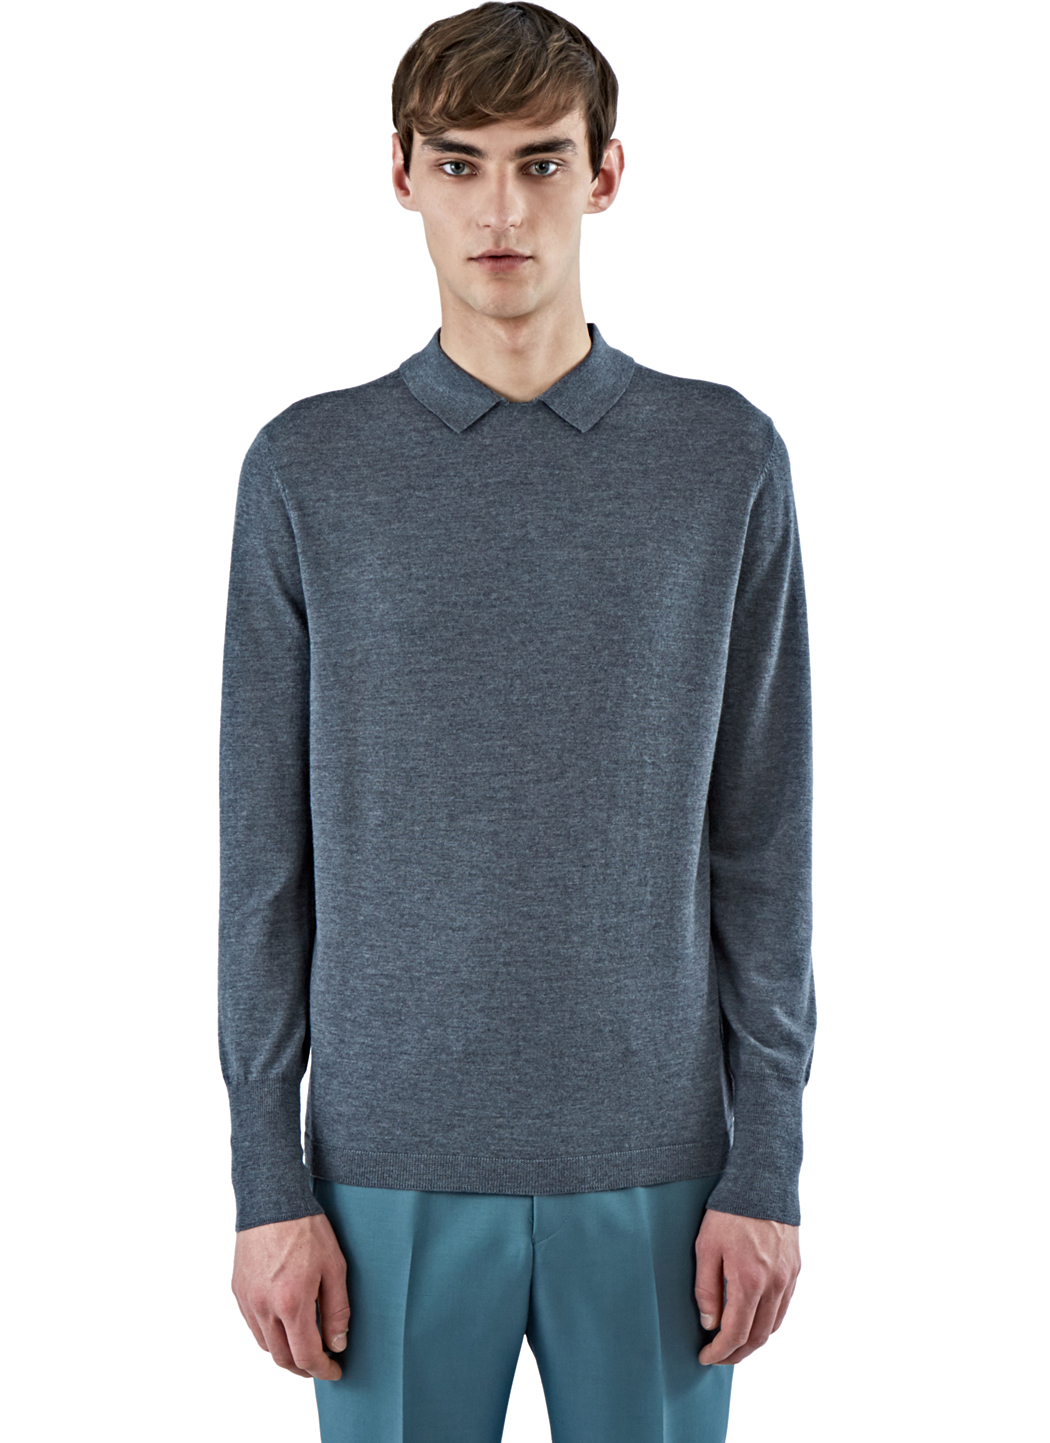 lyst acne studios men 39 s janeck collared sweater in grey in gray for men. Black Bedroom Furniture Sets. Home Design Ideas